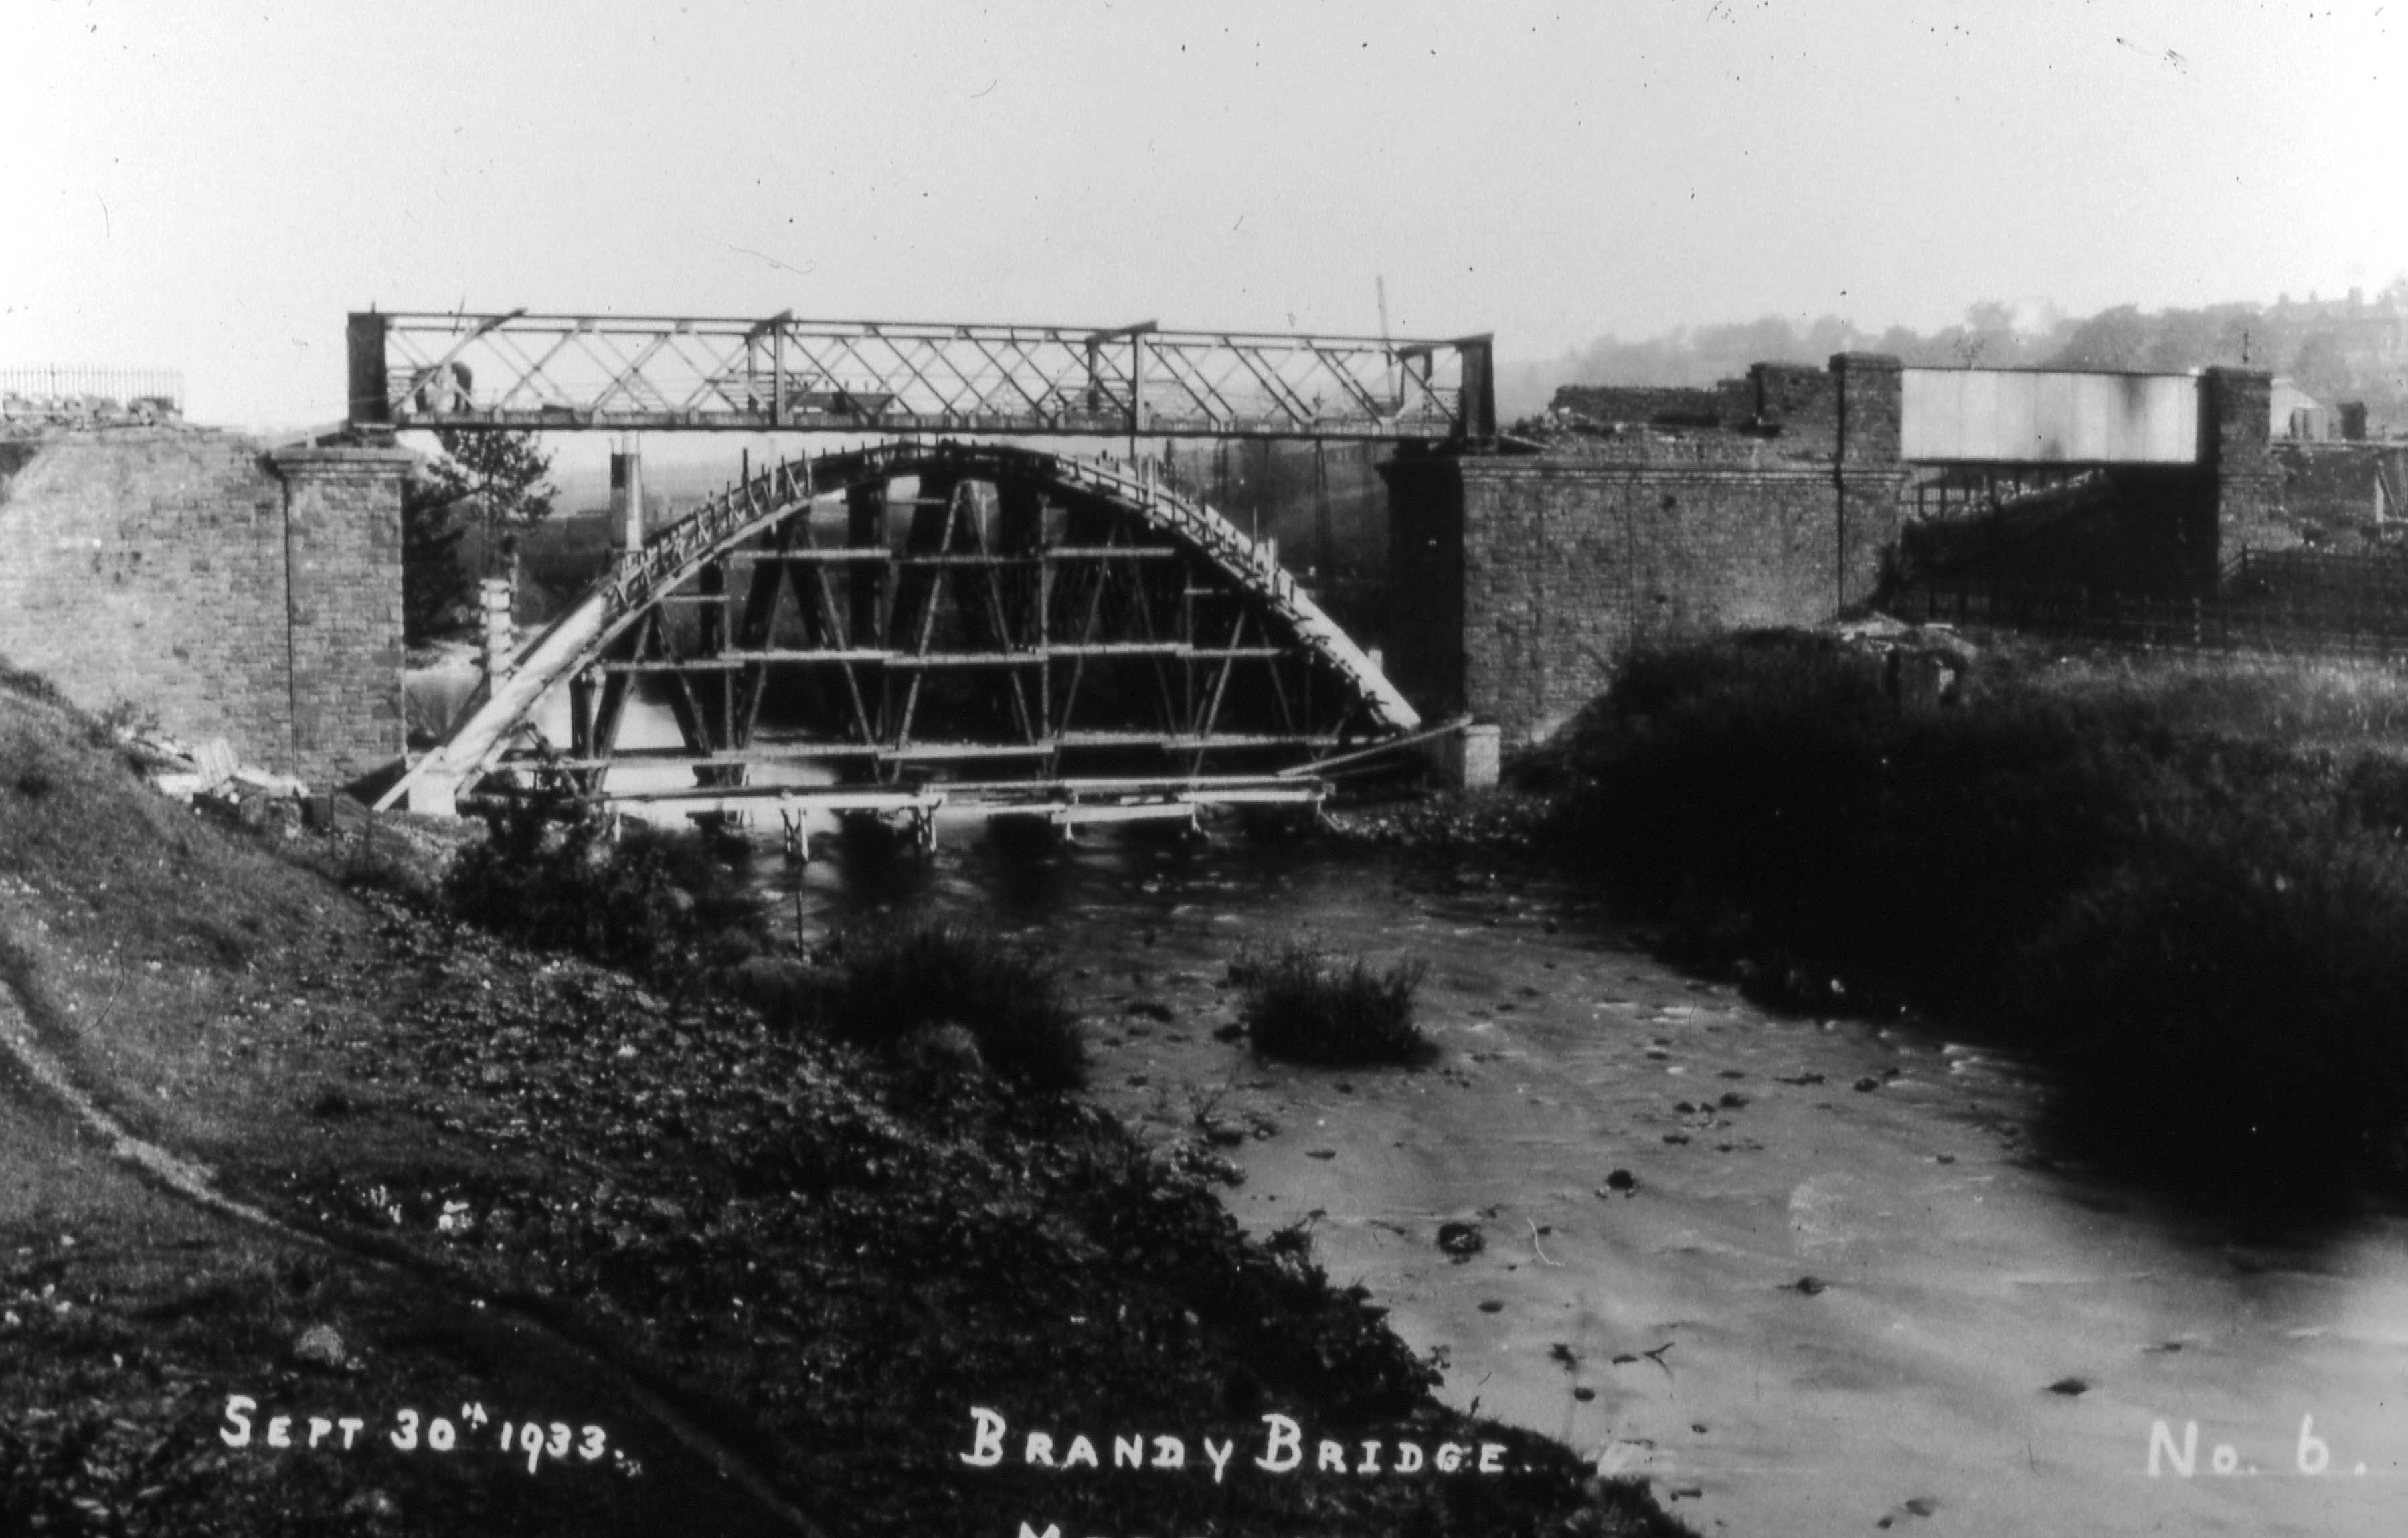 BrandyBridge_Sept30_1933.jpg